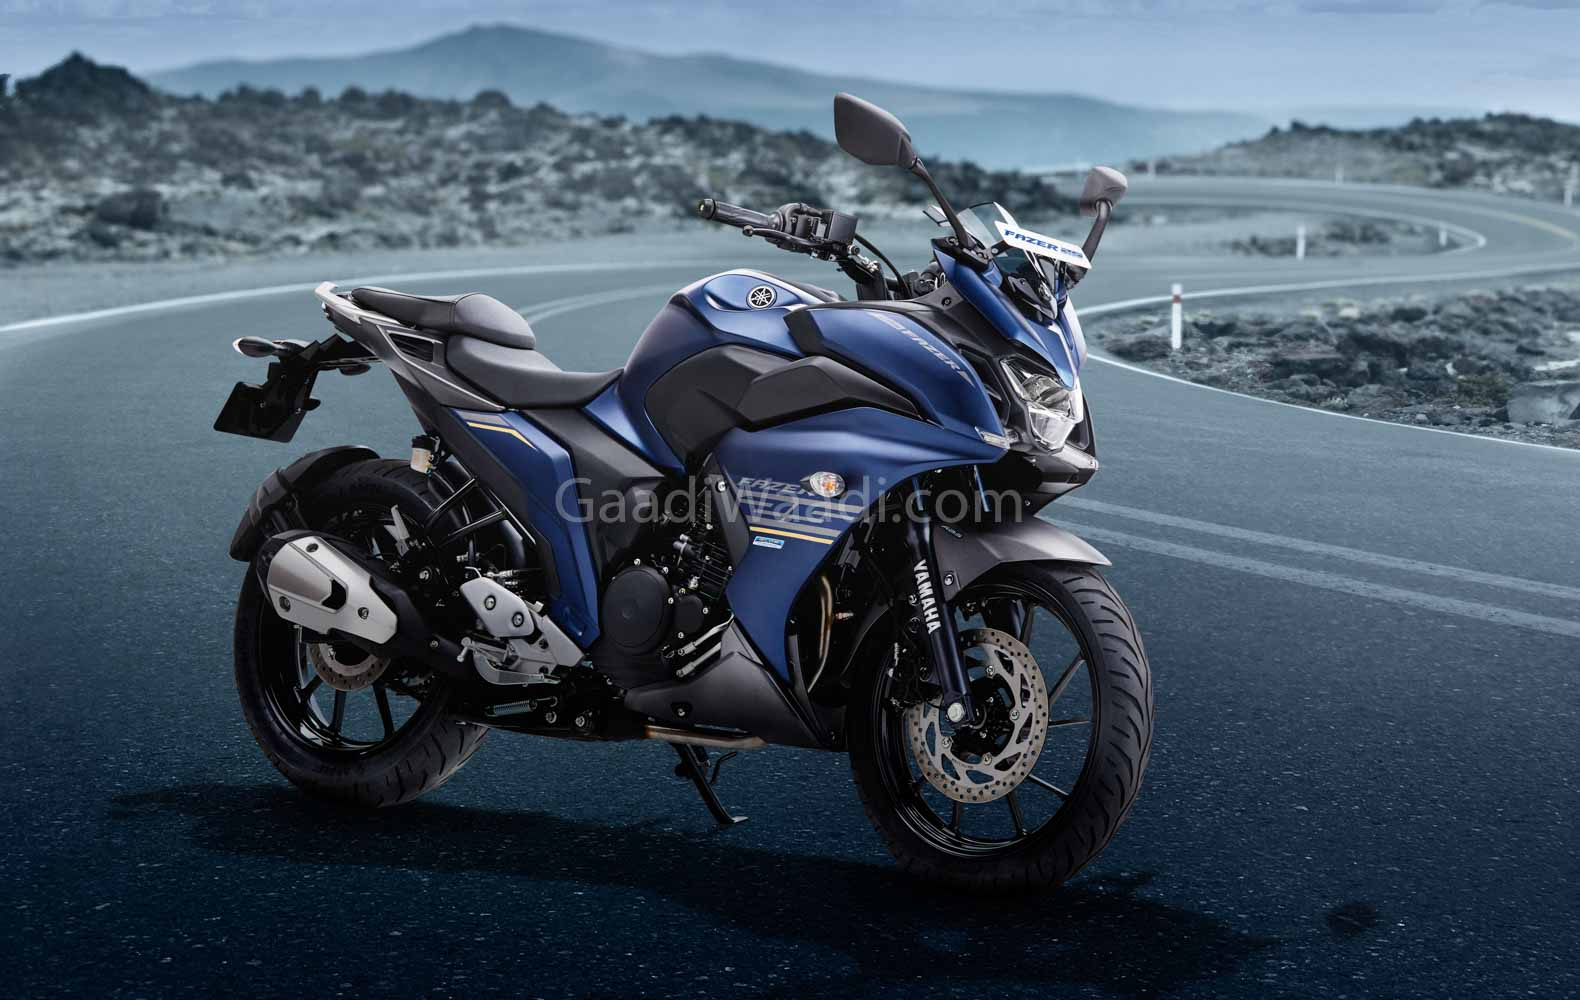 Yamaha Launches FZ25 ABS, Fazer 25 ABS From Rs. 1.33 Lakh